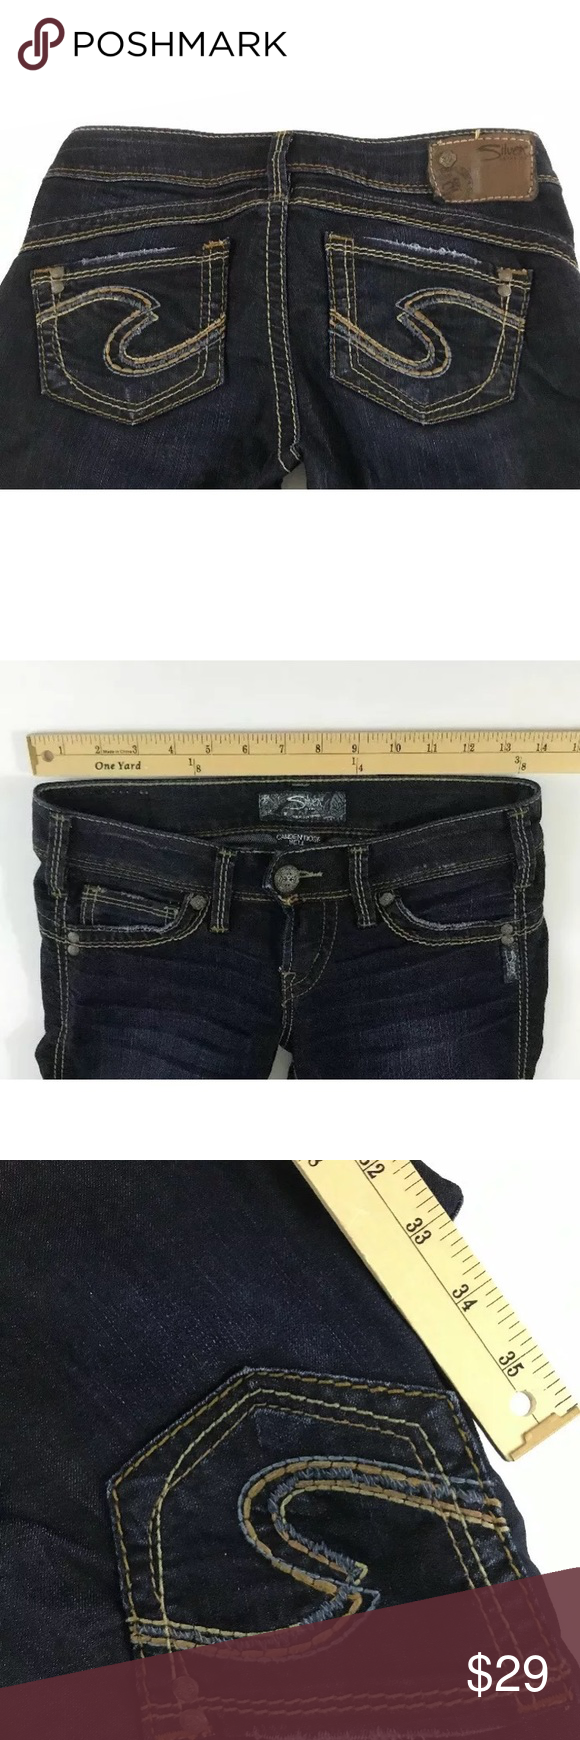 f3977239 Silver Jeans Camden Rose Bell Flare 25x33 Womens Up for your buying  pleasure is a pair